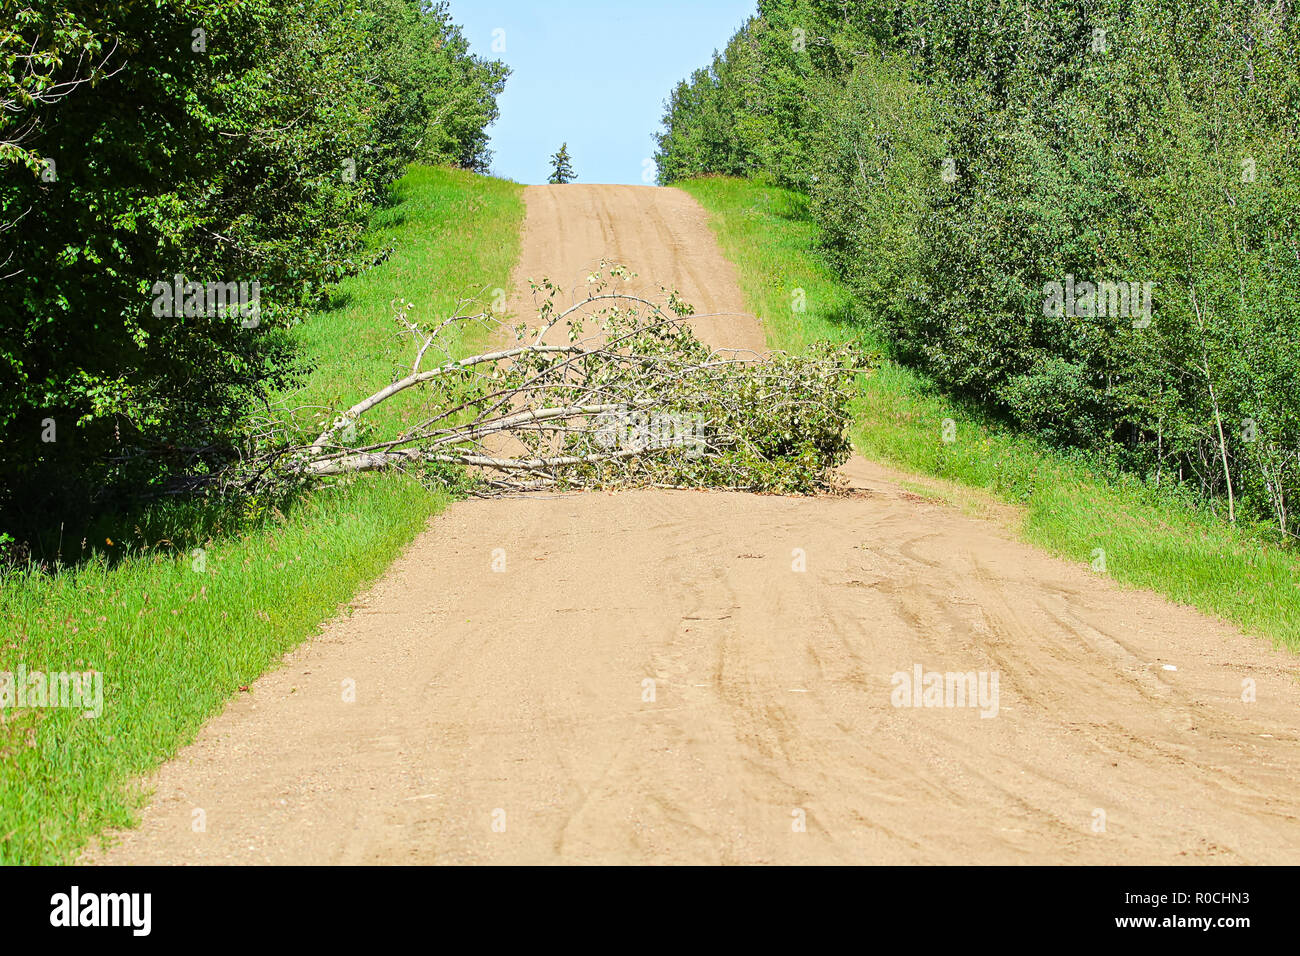 A tree in the middle of the road causing an obstruction - Stock Image